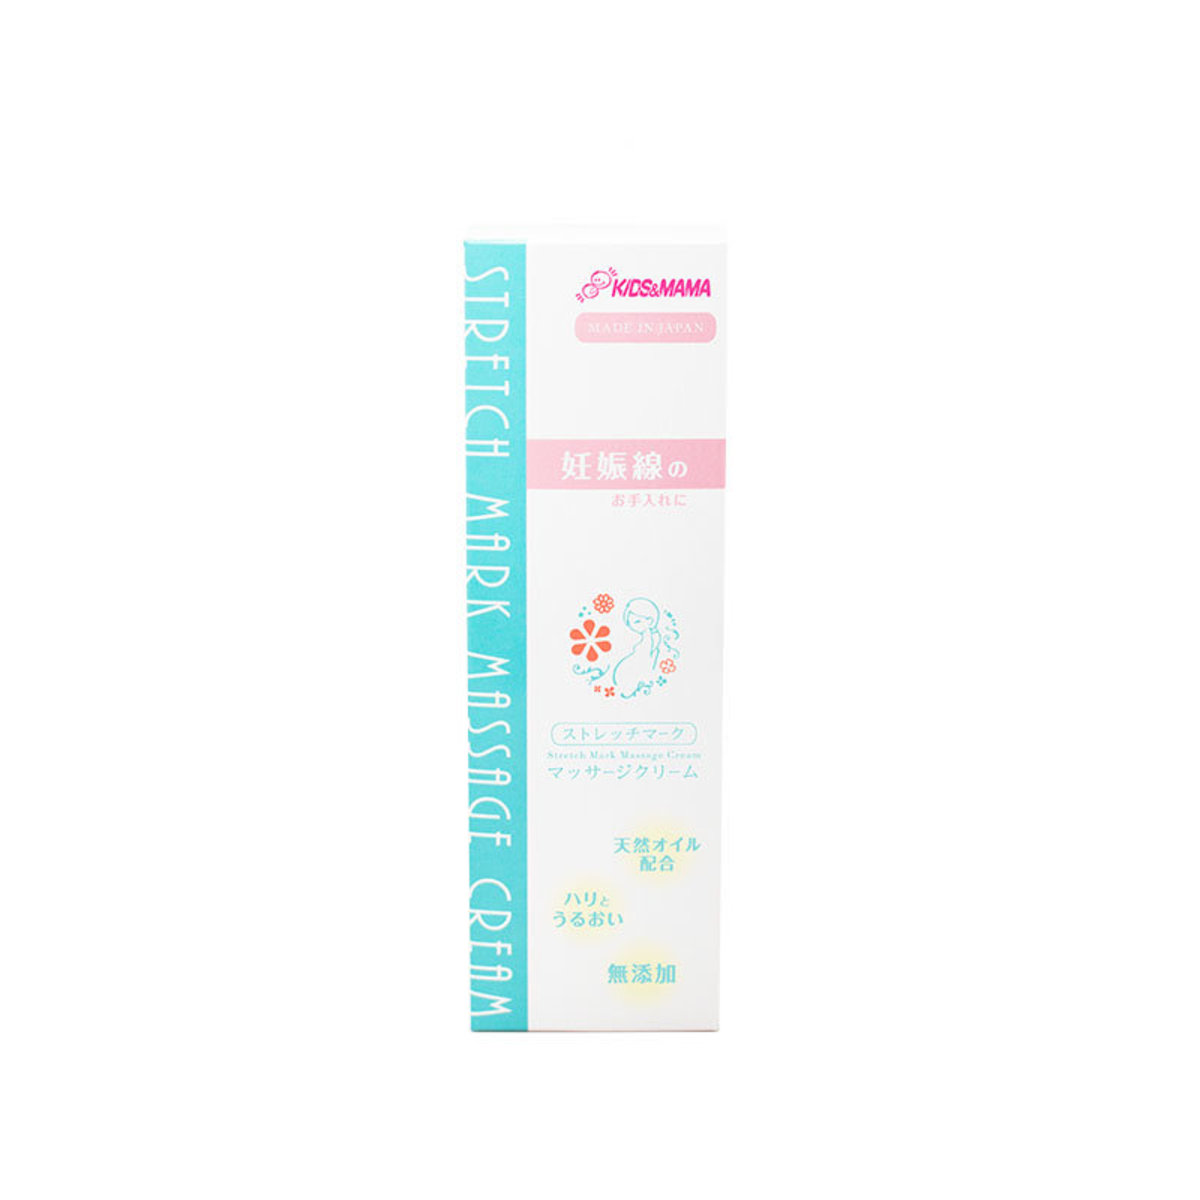 Stretch Marks Prevention Cream 115g